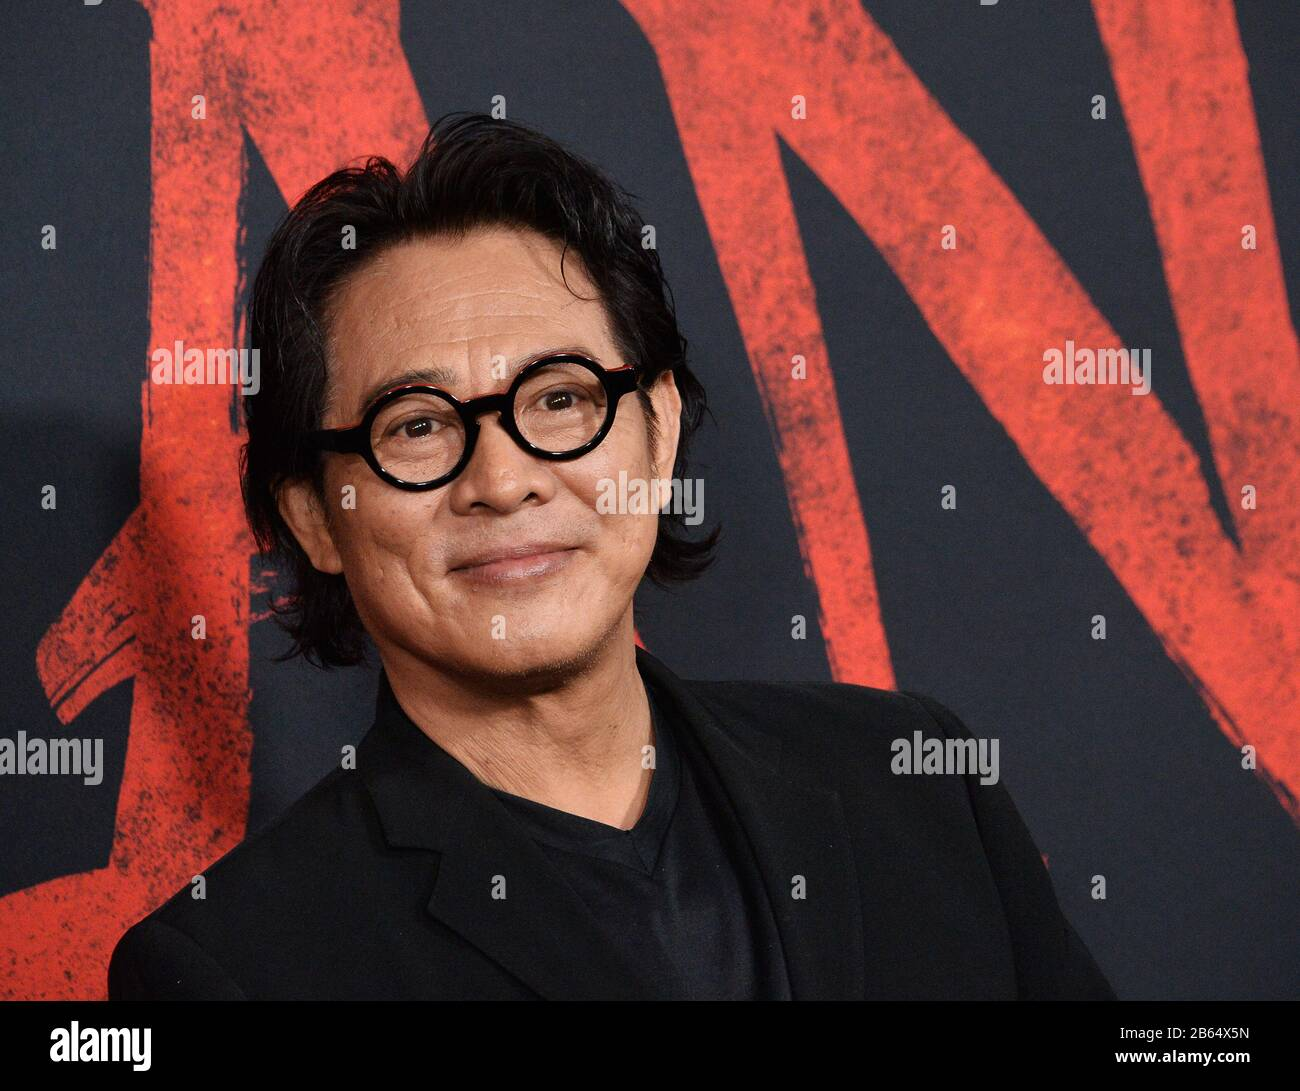 Los Angeles United States 9th Mar 2020 Cast Member Jet Li Attends The Premiere Of The Motion Picture Adventure Drama Mulan At The Dolby Theatre In The Hollywood Section Of Los Angeles